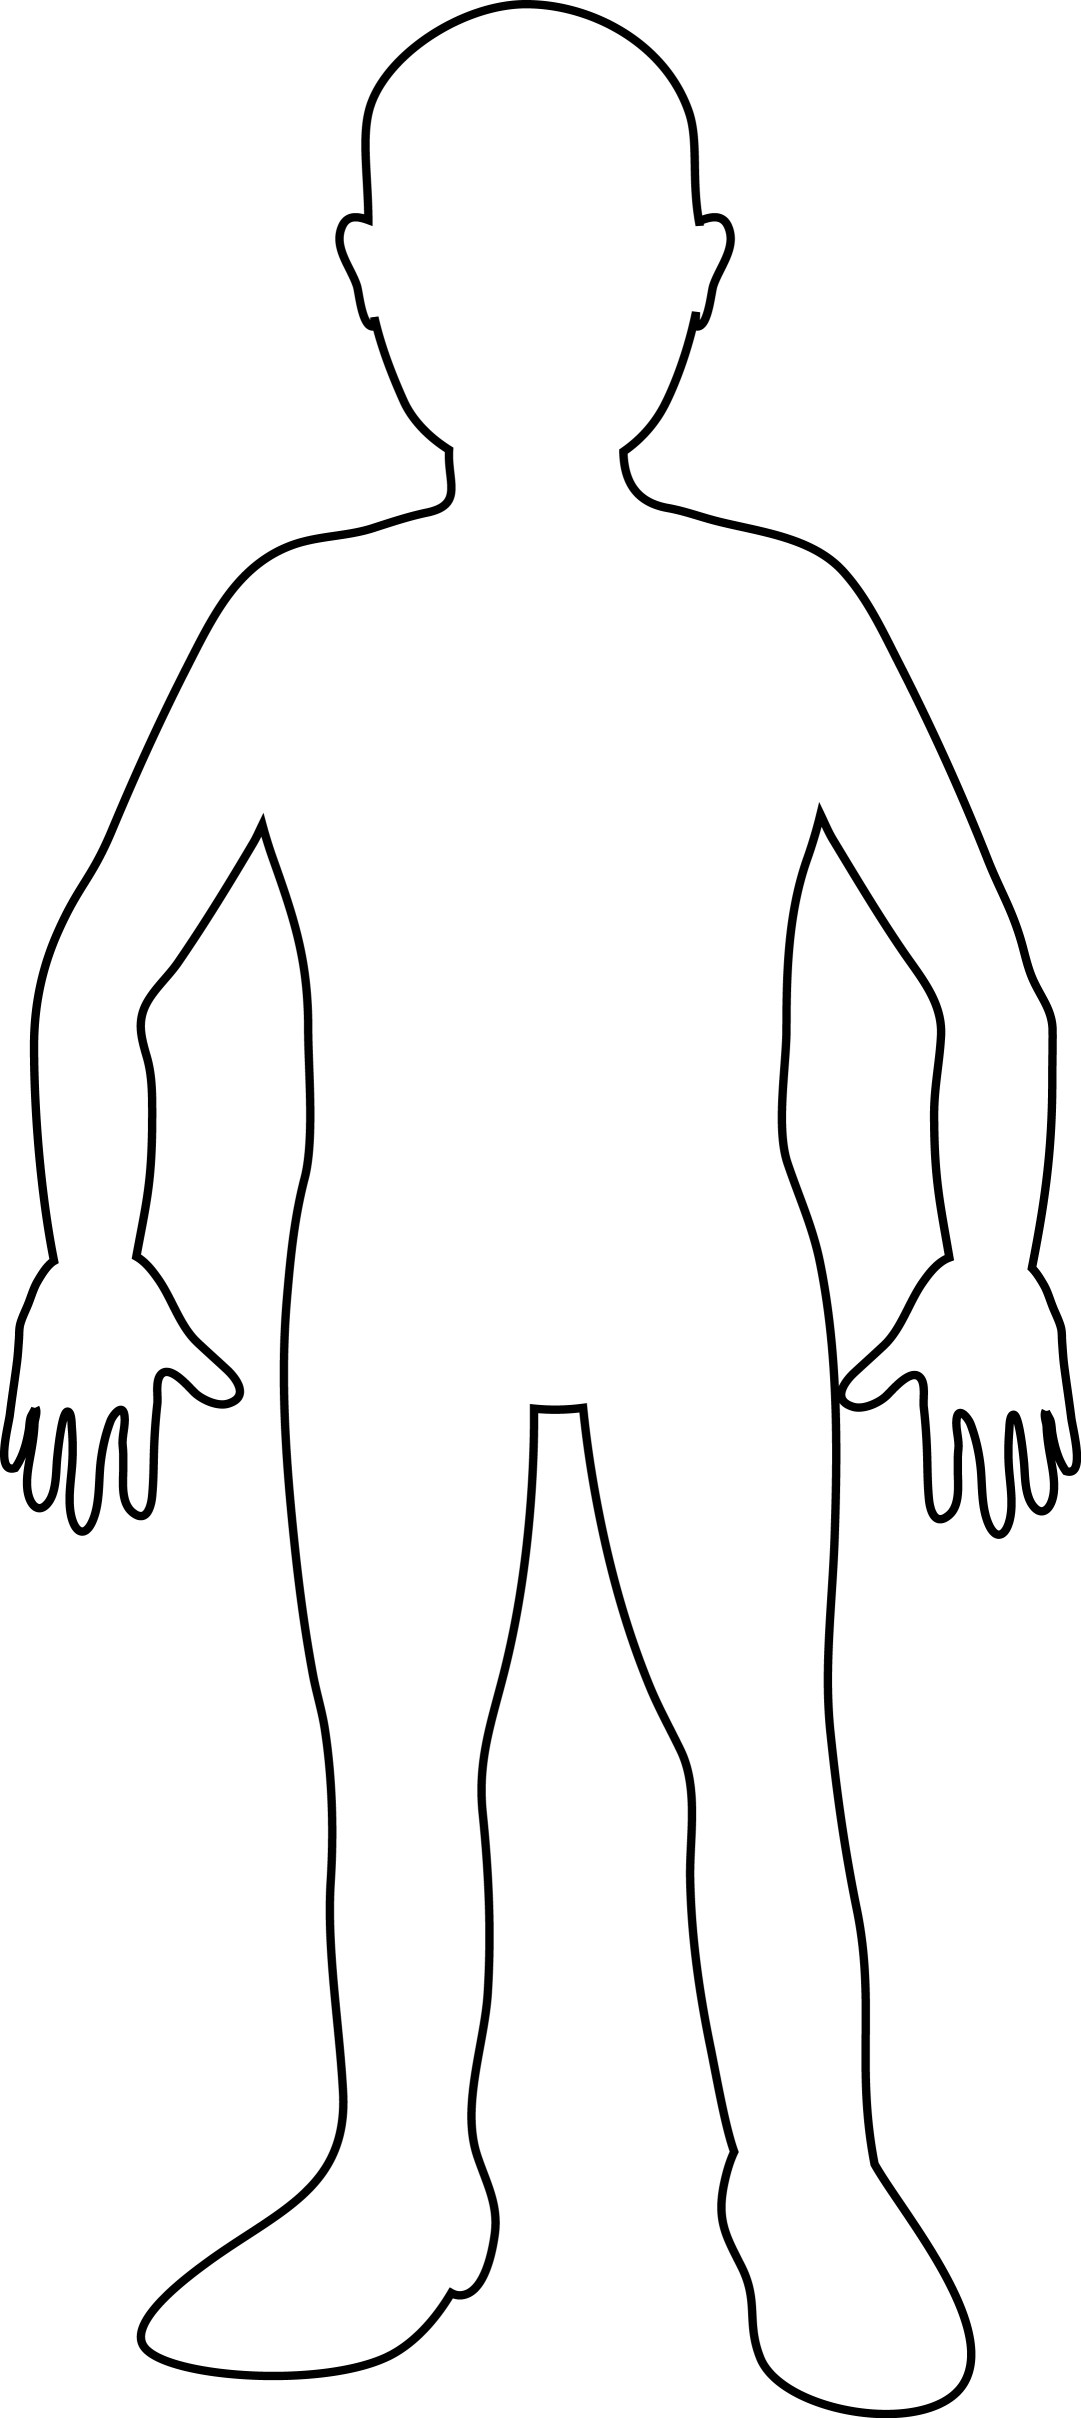 It is an image of Comprehensive Printable Human Body Outline Template Pdf